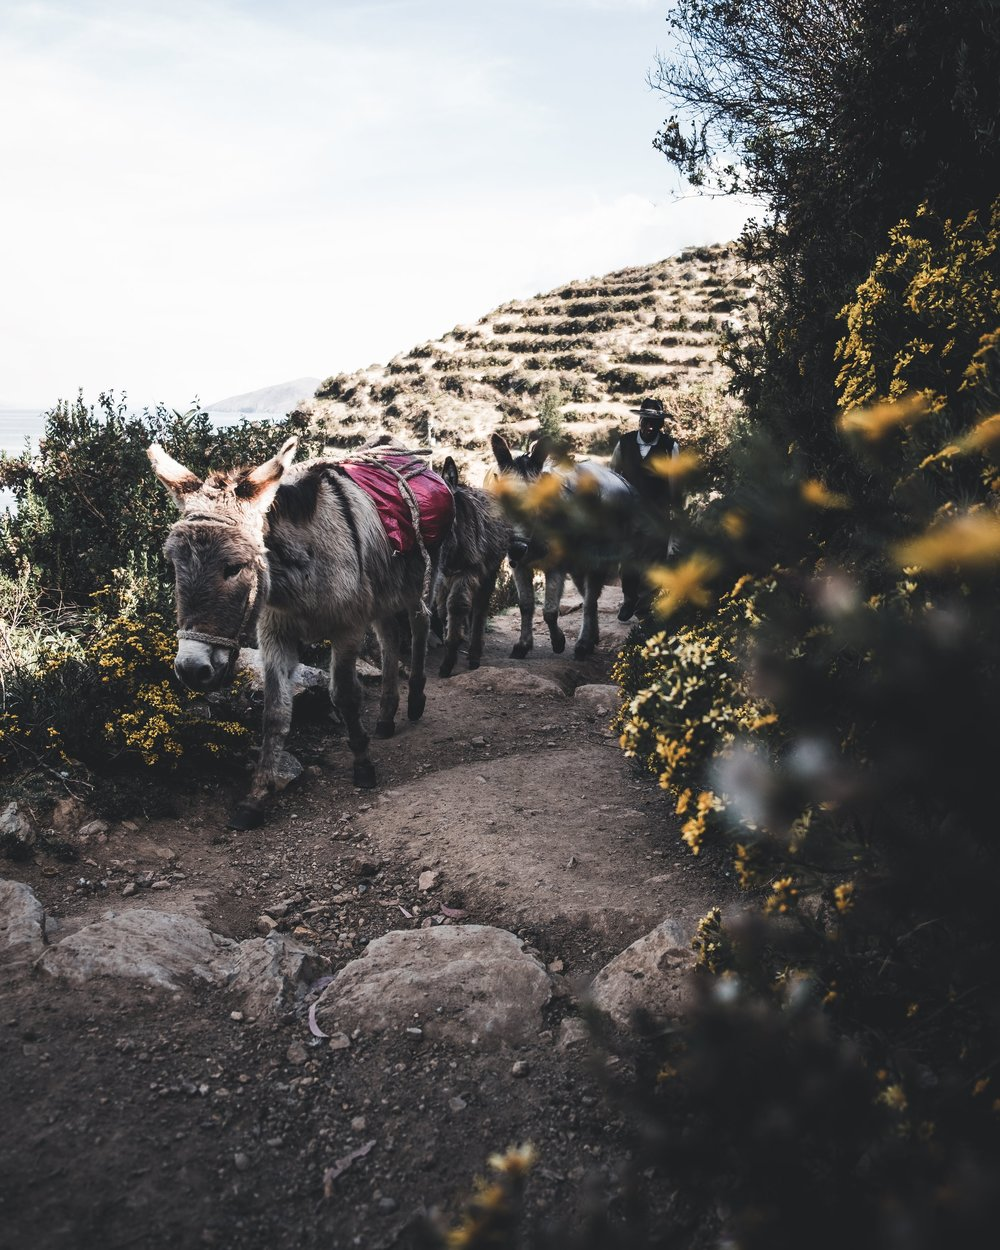 Packed donkeys at the Isla del Sol | Titicaca lake